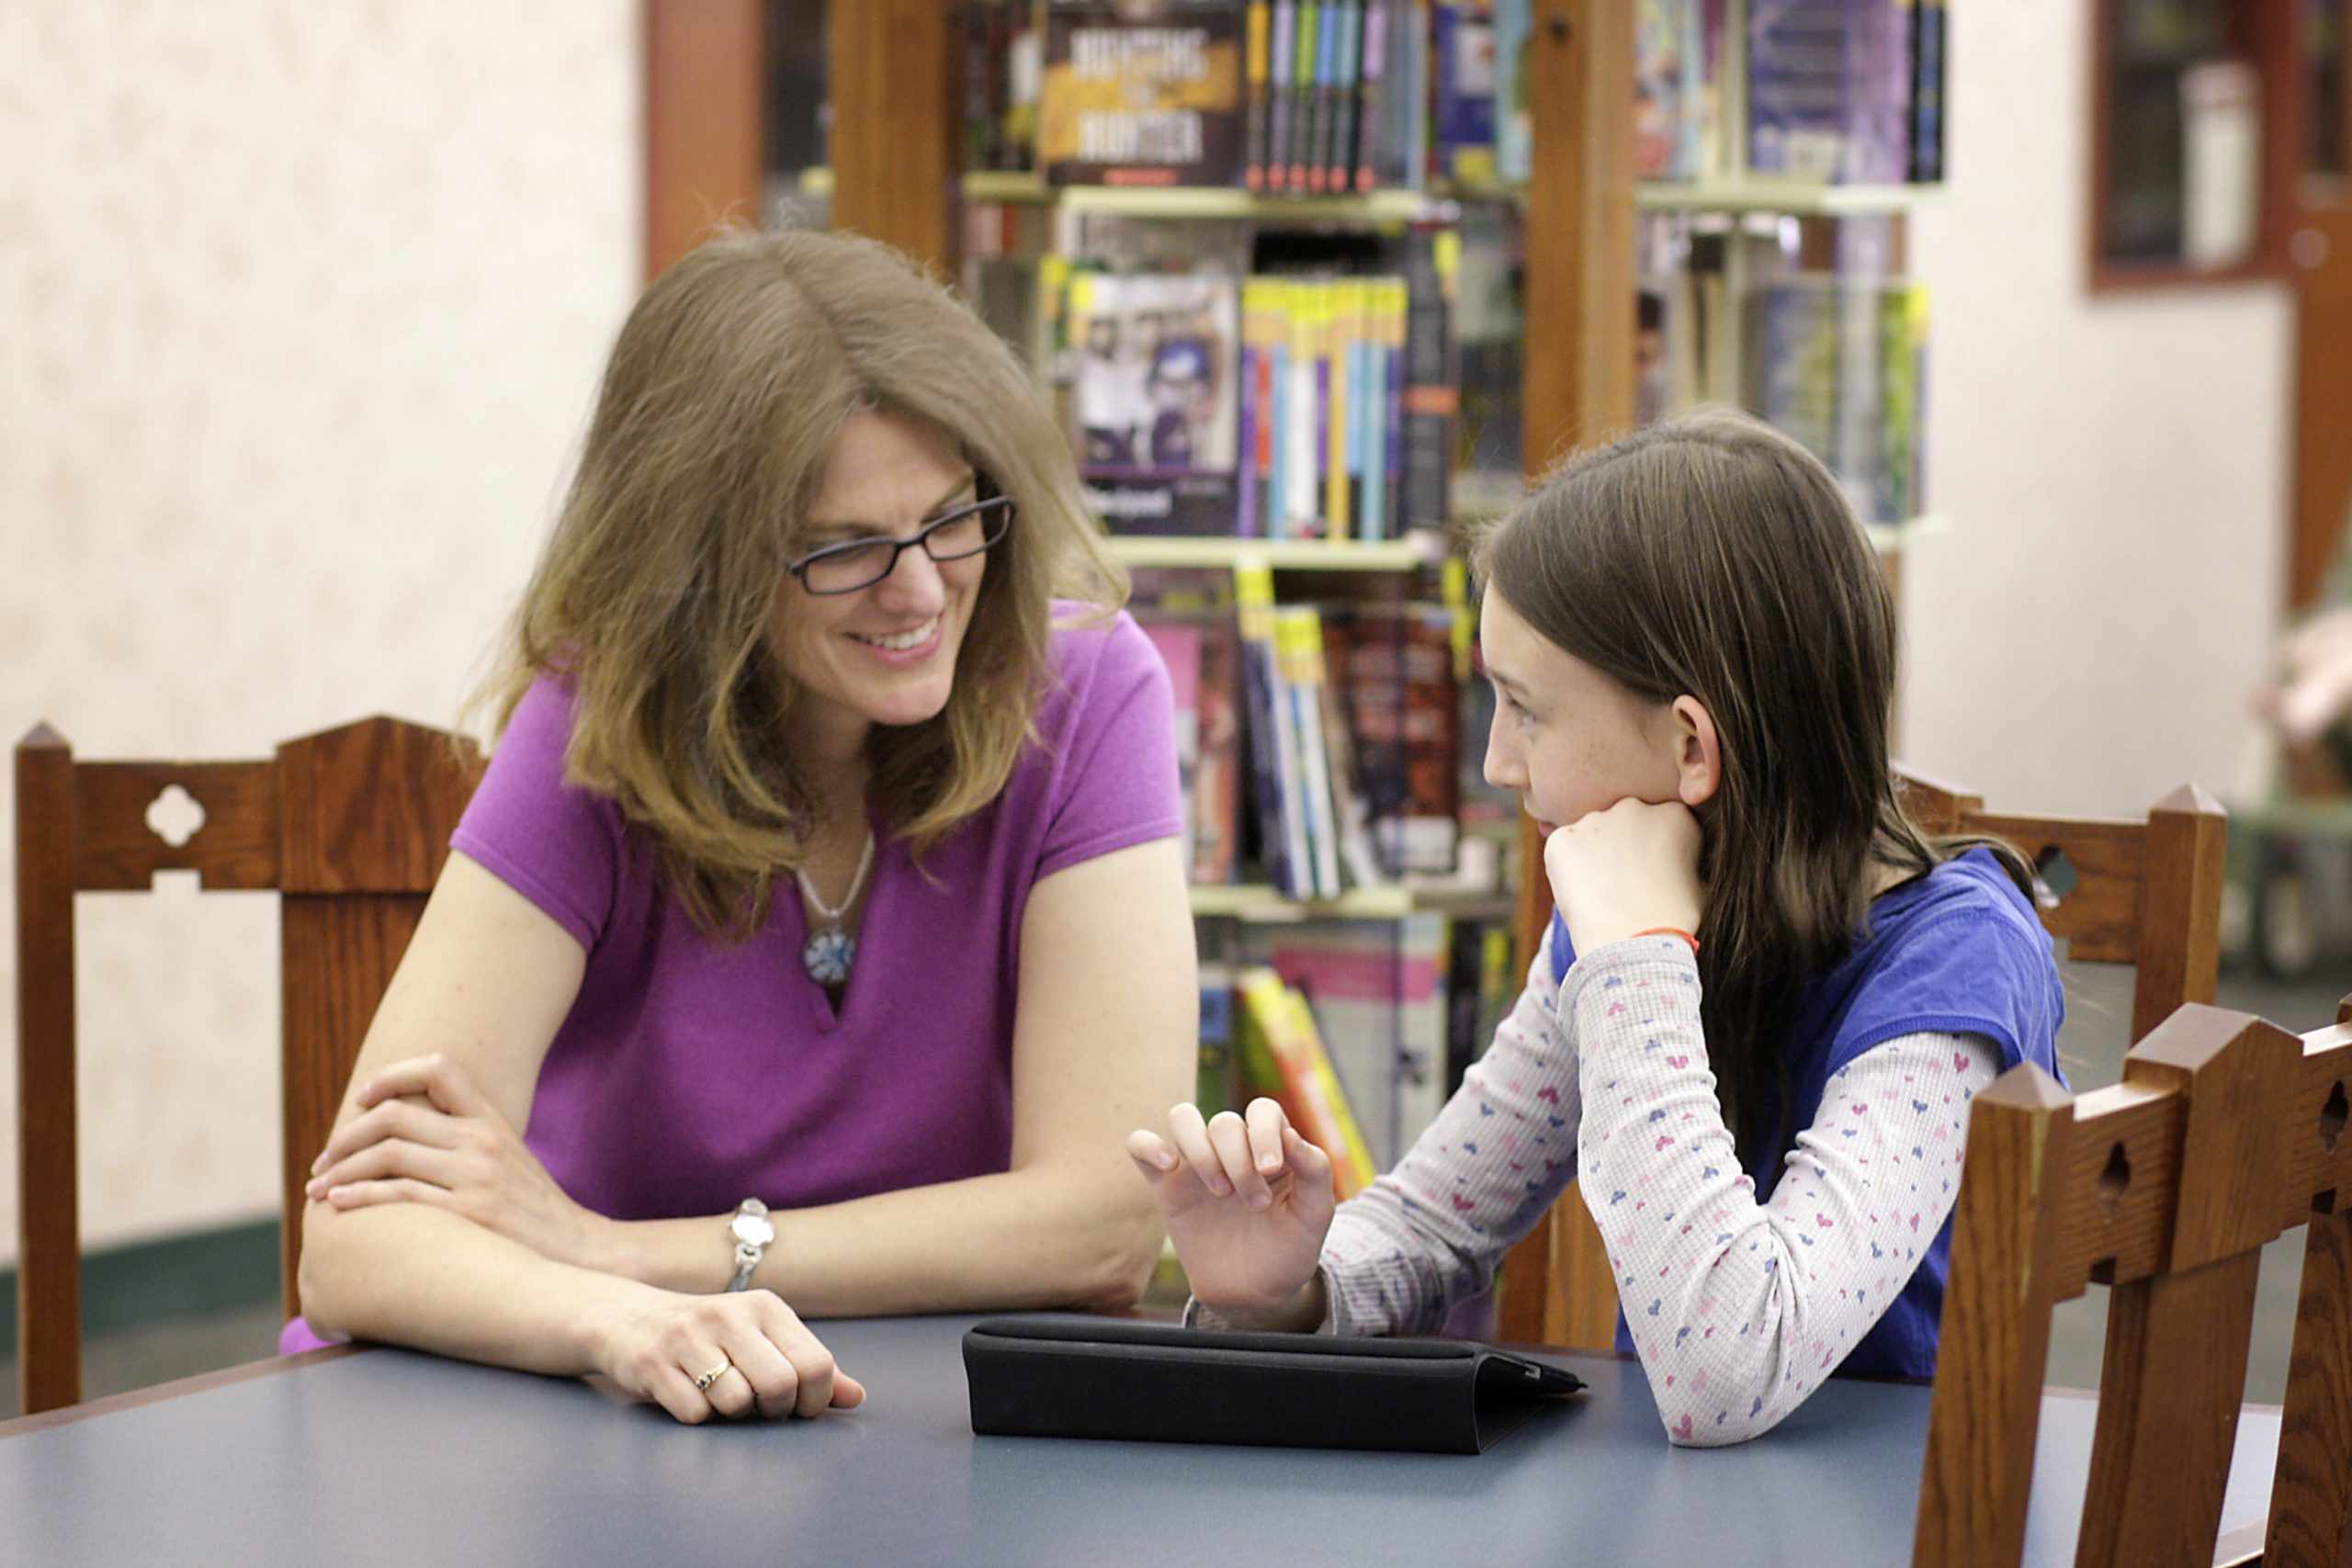 augmentative and alternative communication apps for educators and classrooms